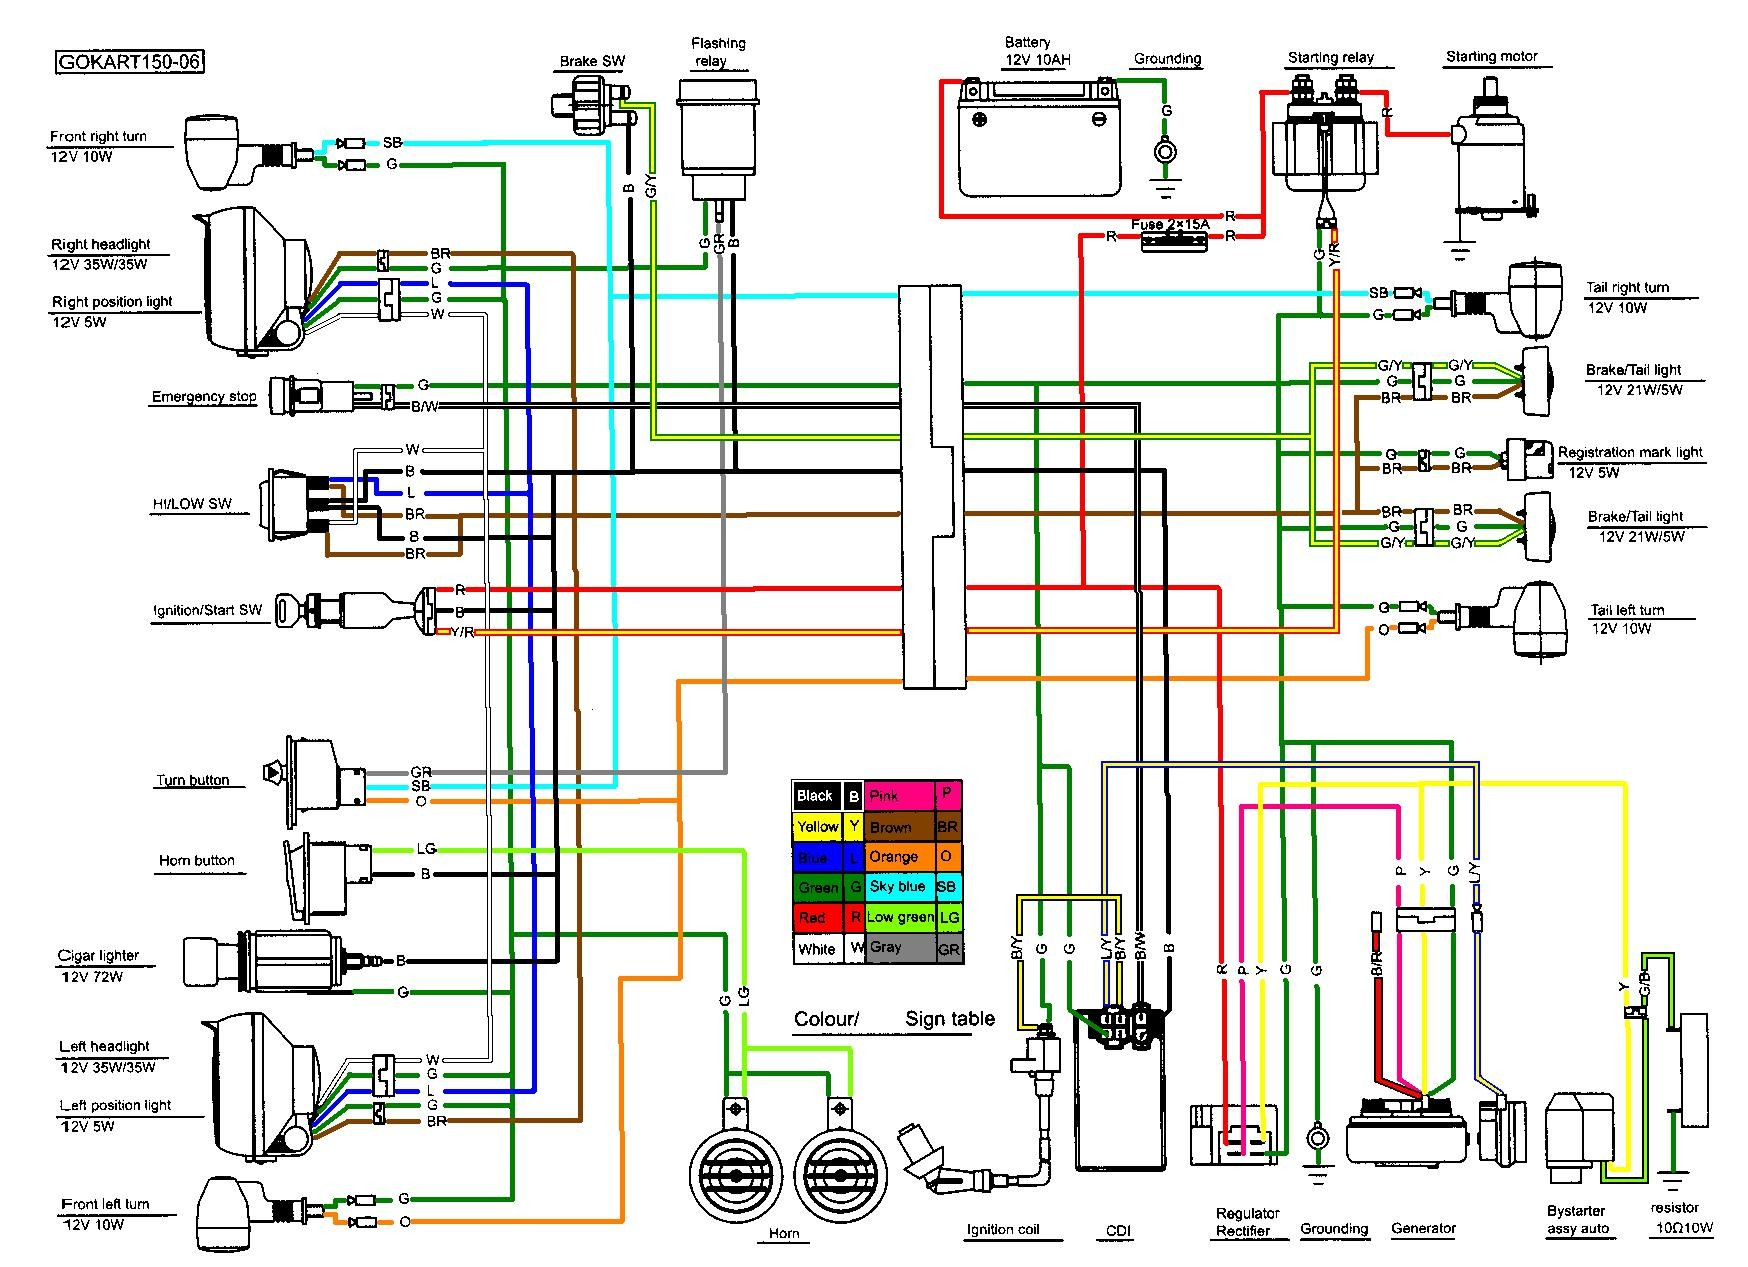 diagram] wiring diagram for taotao atv full version hd quality taotao atv -  chartmapdiagram.jepix.fr  chartmapdiagram.jepix.fr